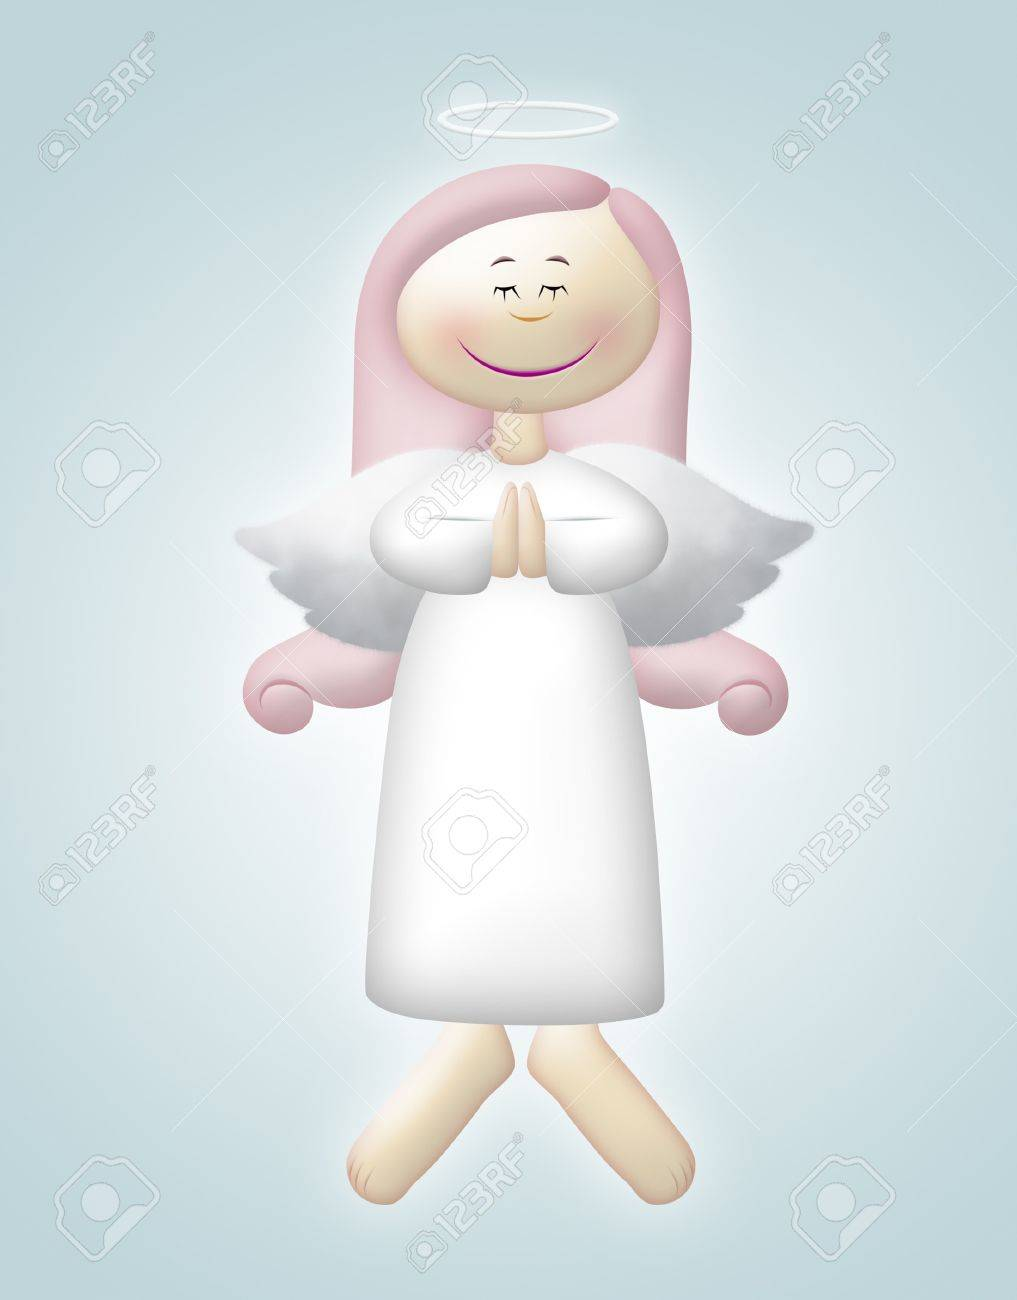 Floating angel with pink hair praying. - 8365521